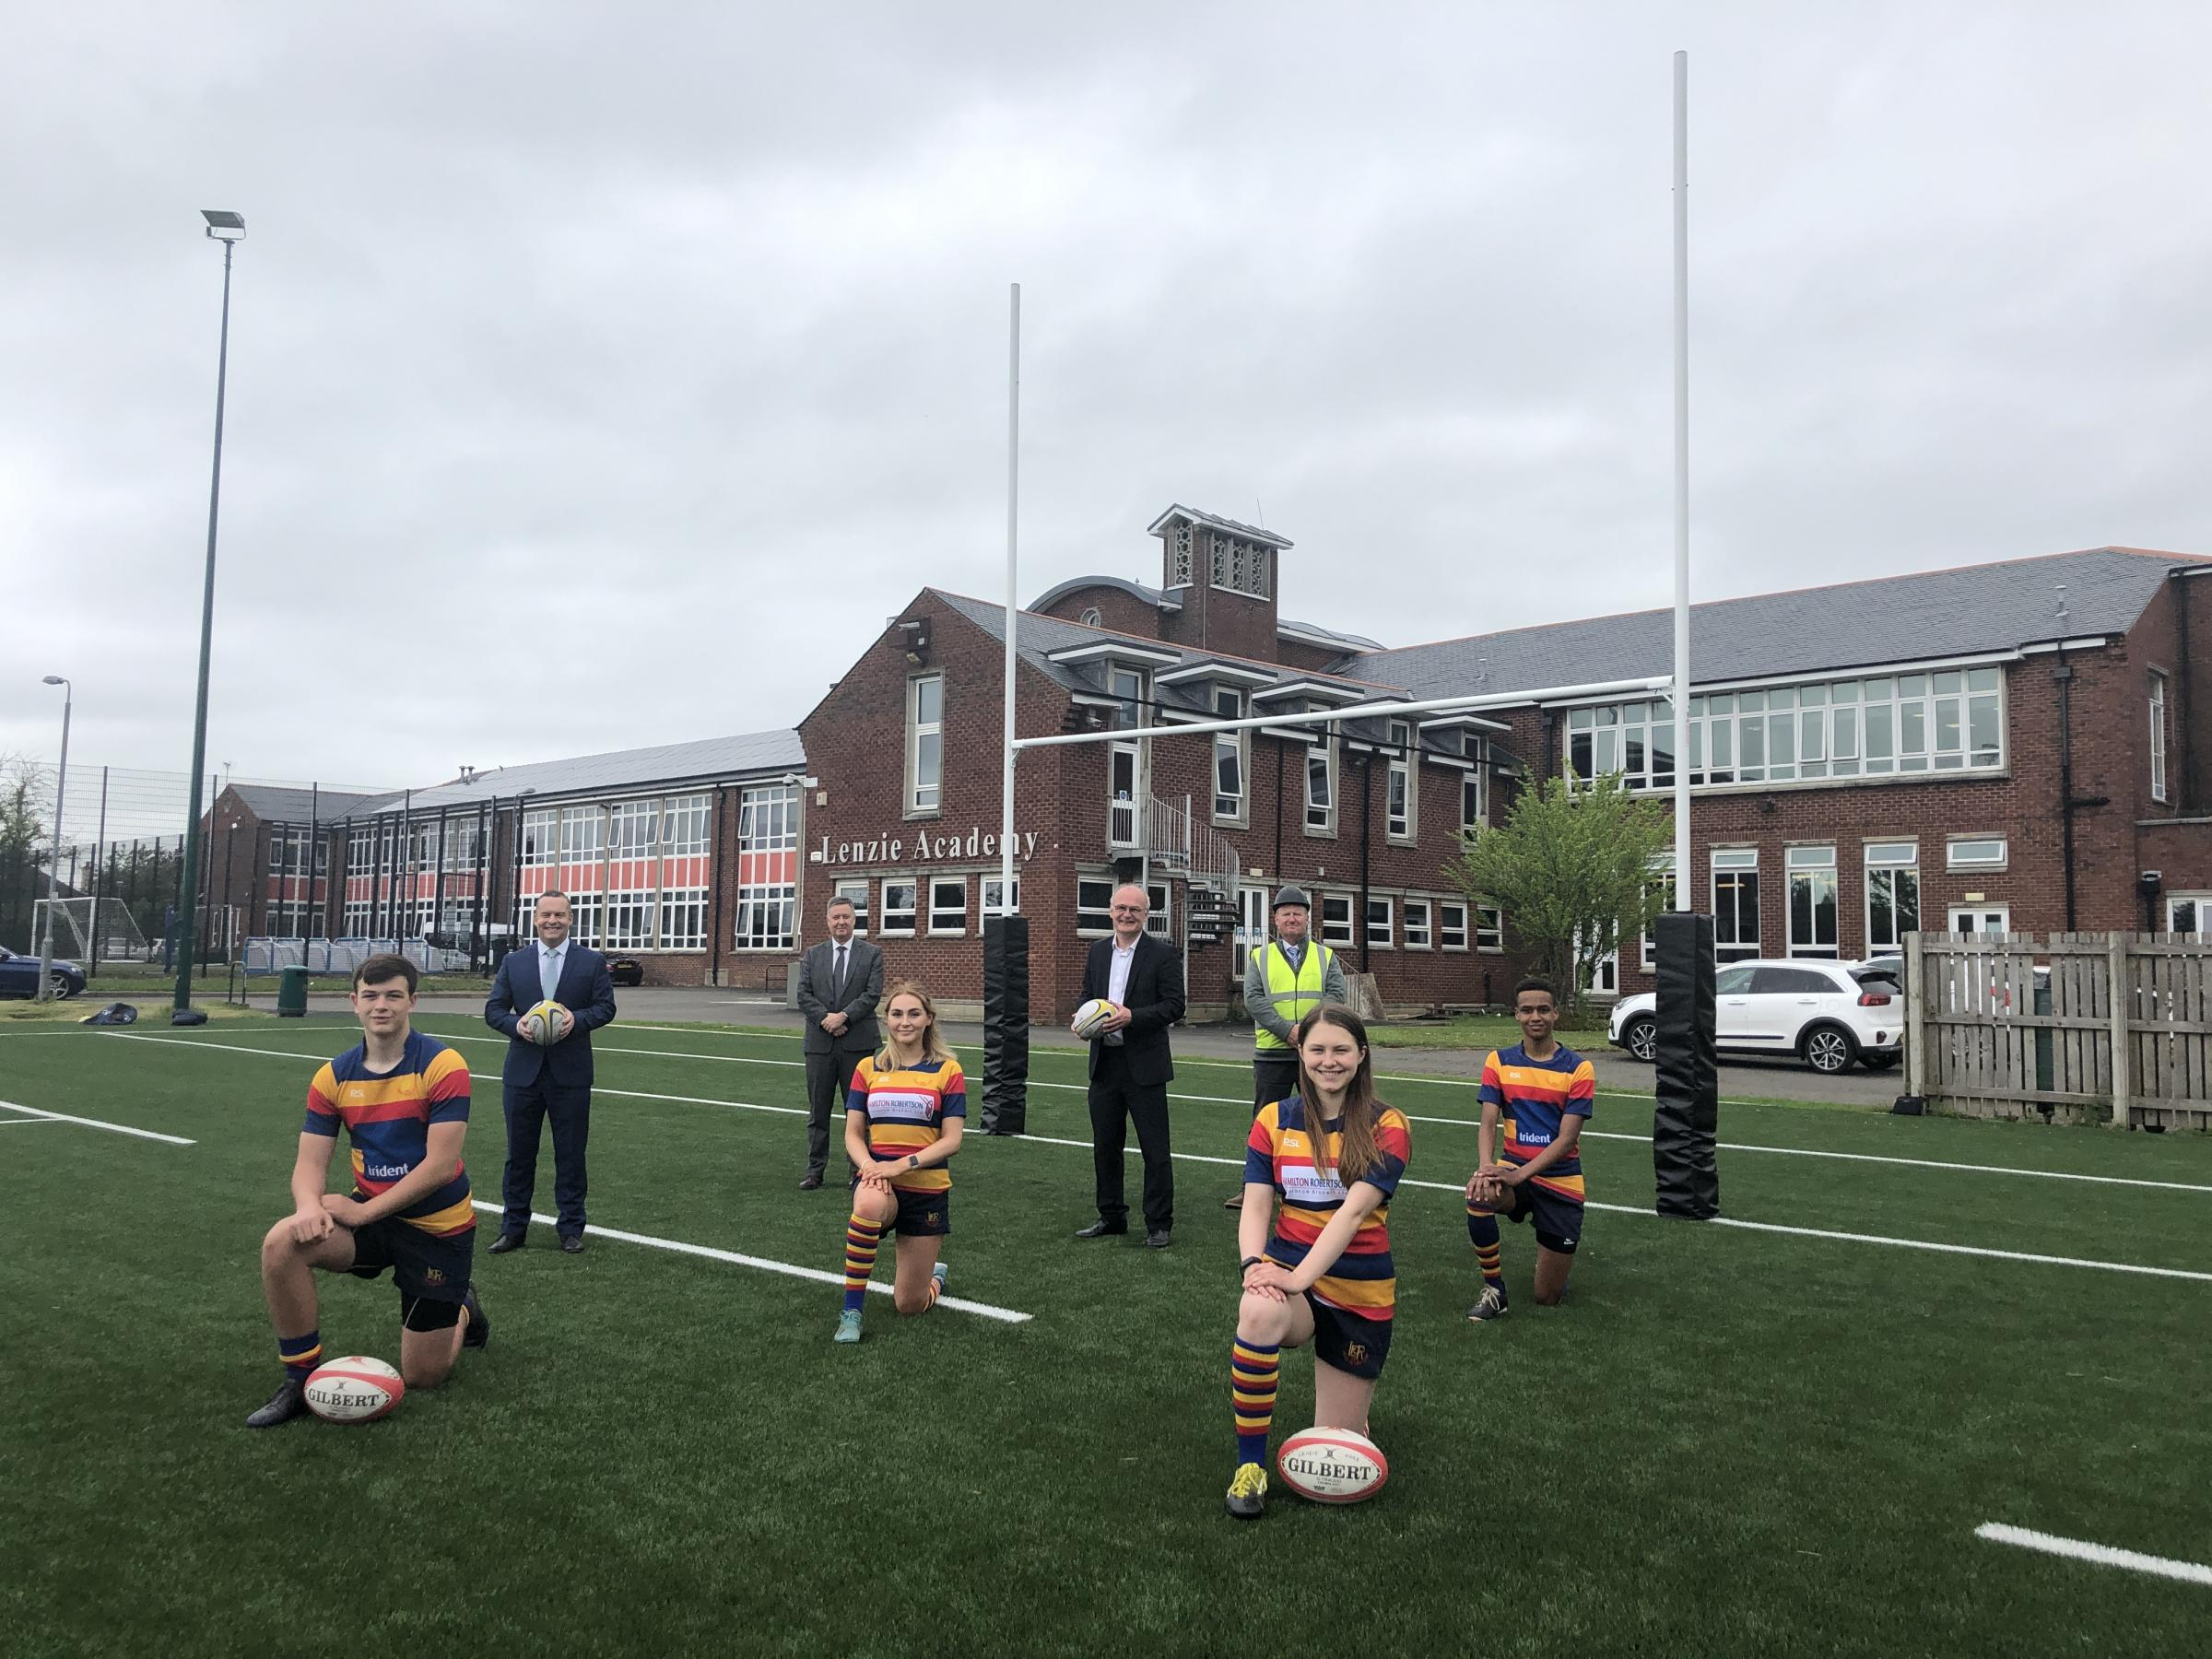 Lenzie Academy pupils benefit from new state-of-the-art rugby pitch